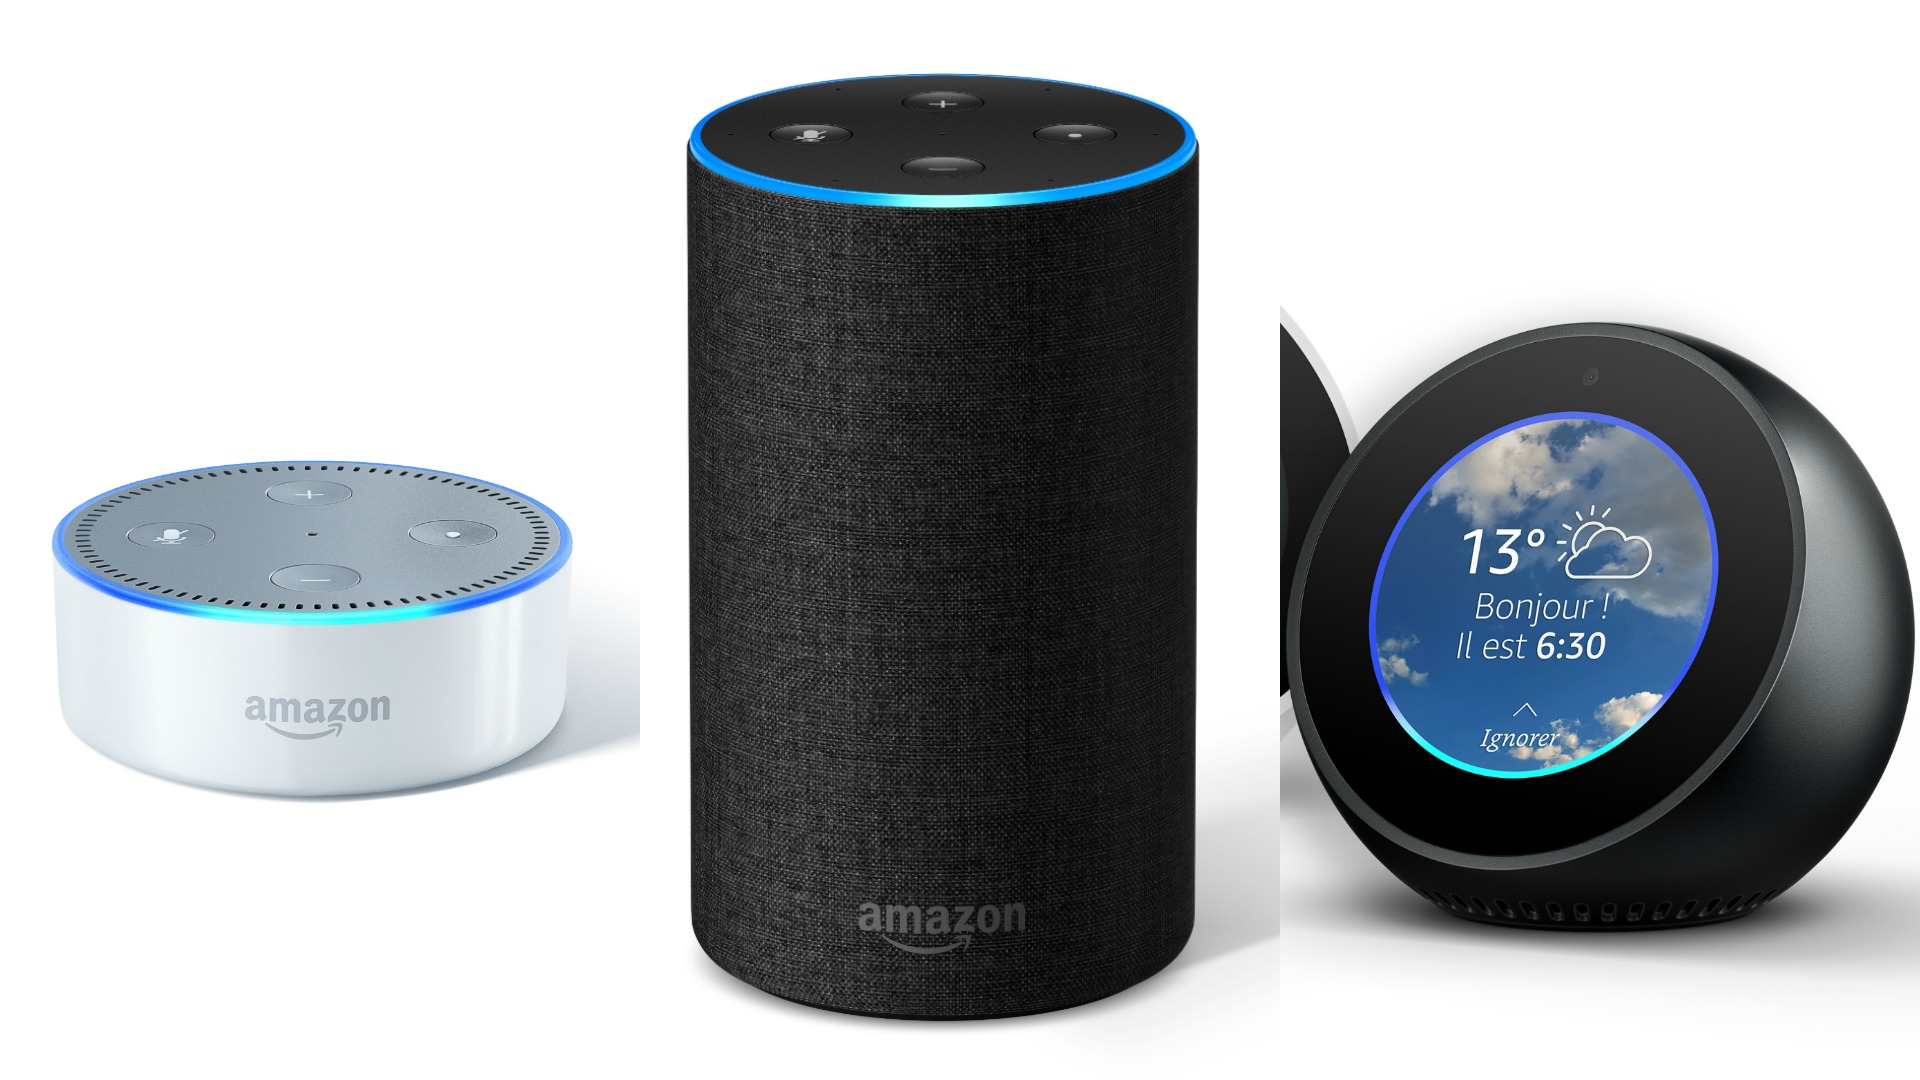 amazon echo et echo dot les enceintes connect es sont enfin disponibles en france tech. Black Bedroom Furniture Sets. Home Design Ideas